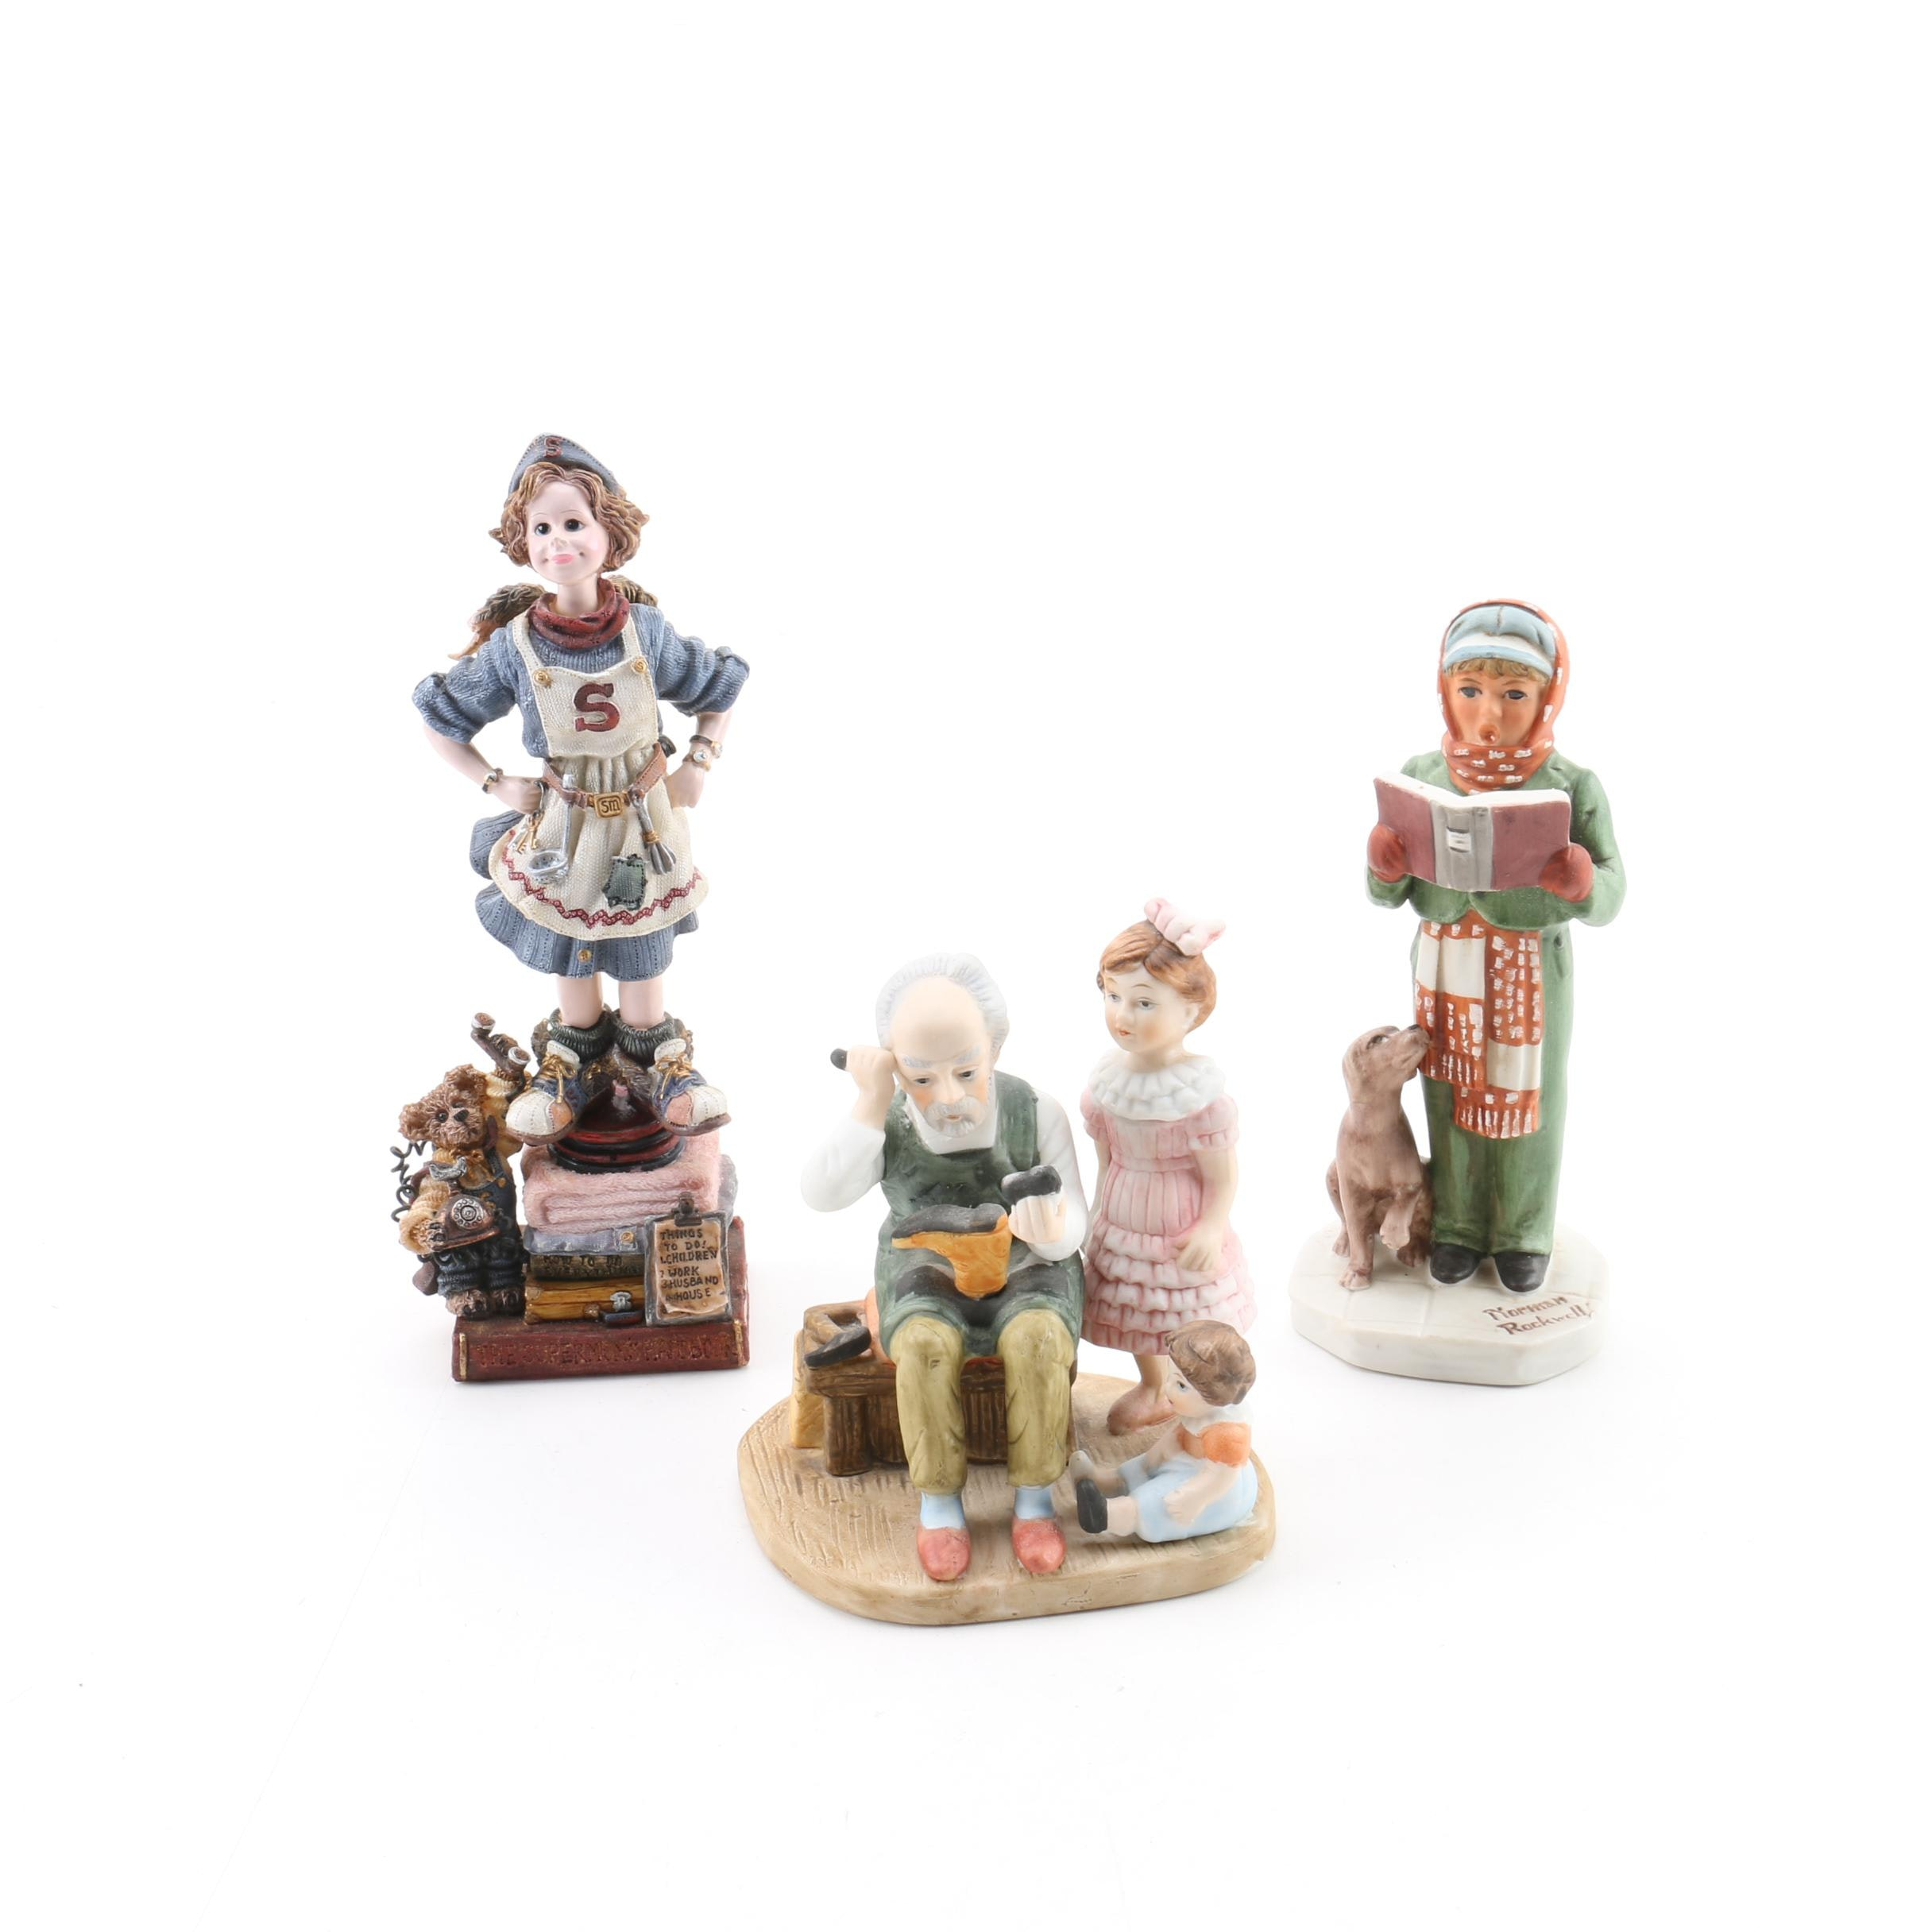 "Porcelain and Ceramic Figurines Including ""The Cobbler"" by Royal Heritage"